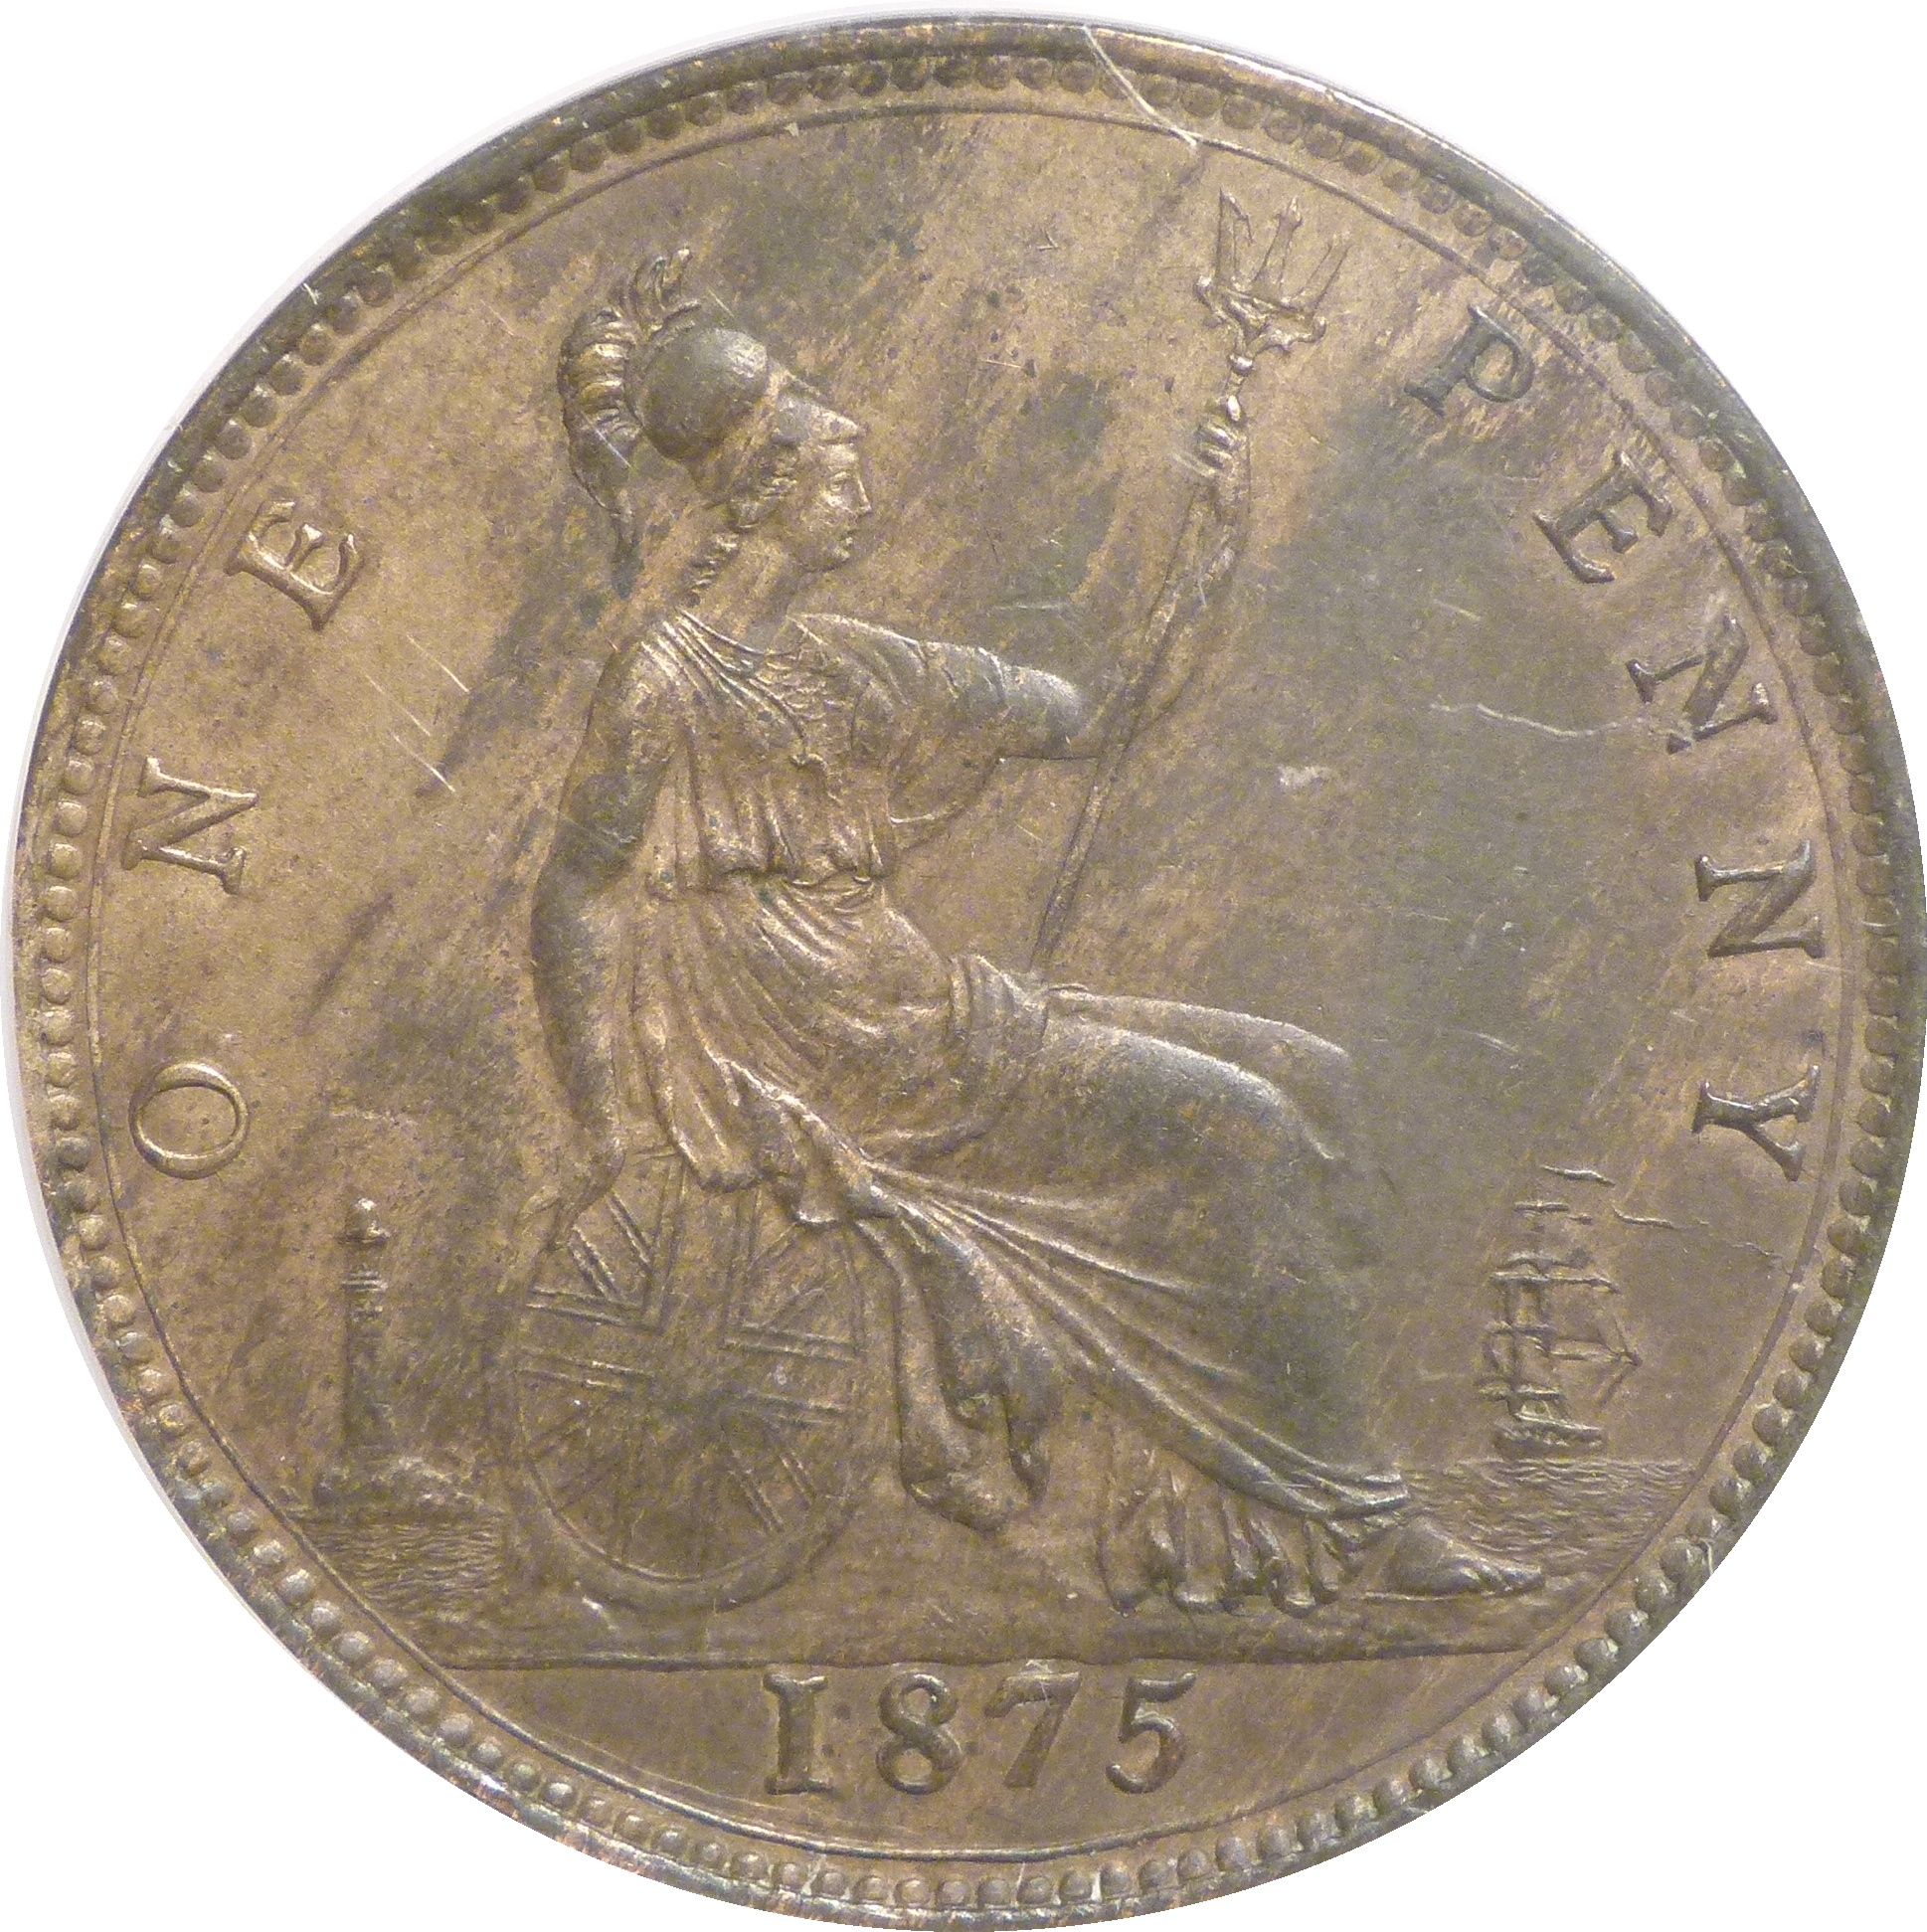 1875 Penny, CGS 60(AU 58-MS 60), EF, Freeman 80, Dies 8+H, UIN 20255, Sold at auction